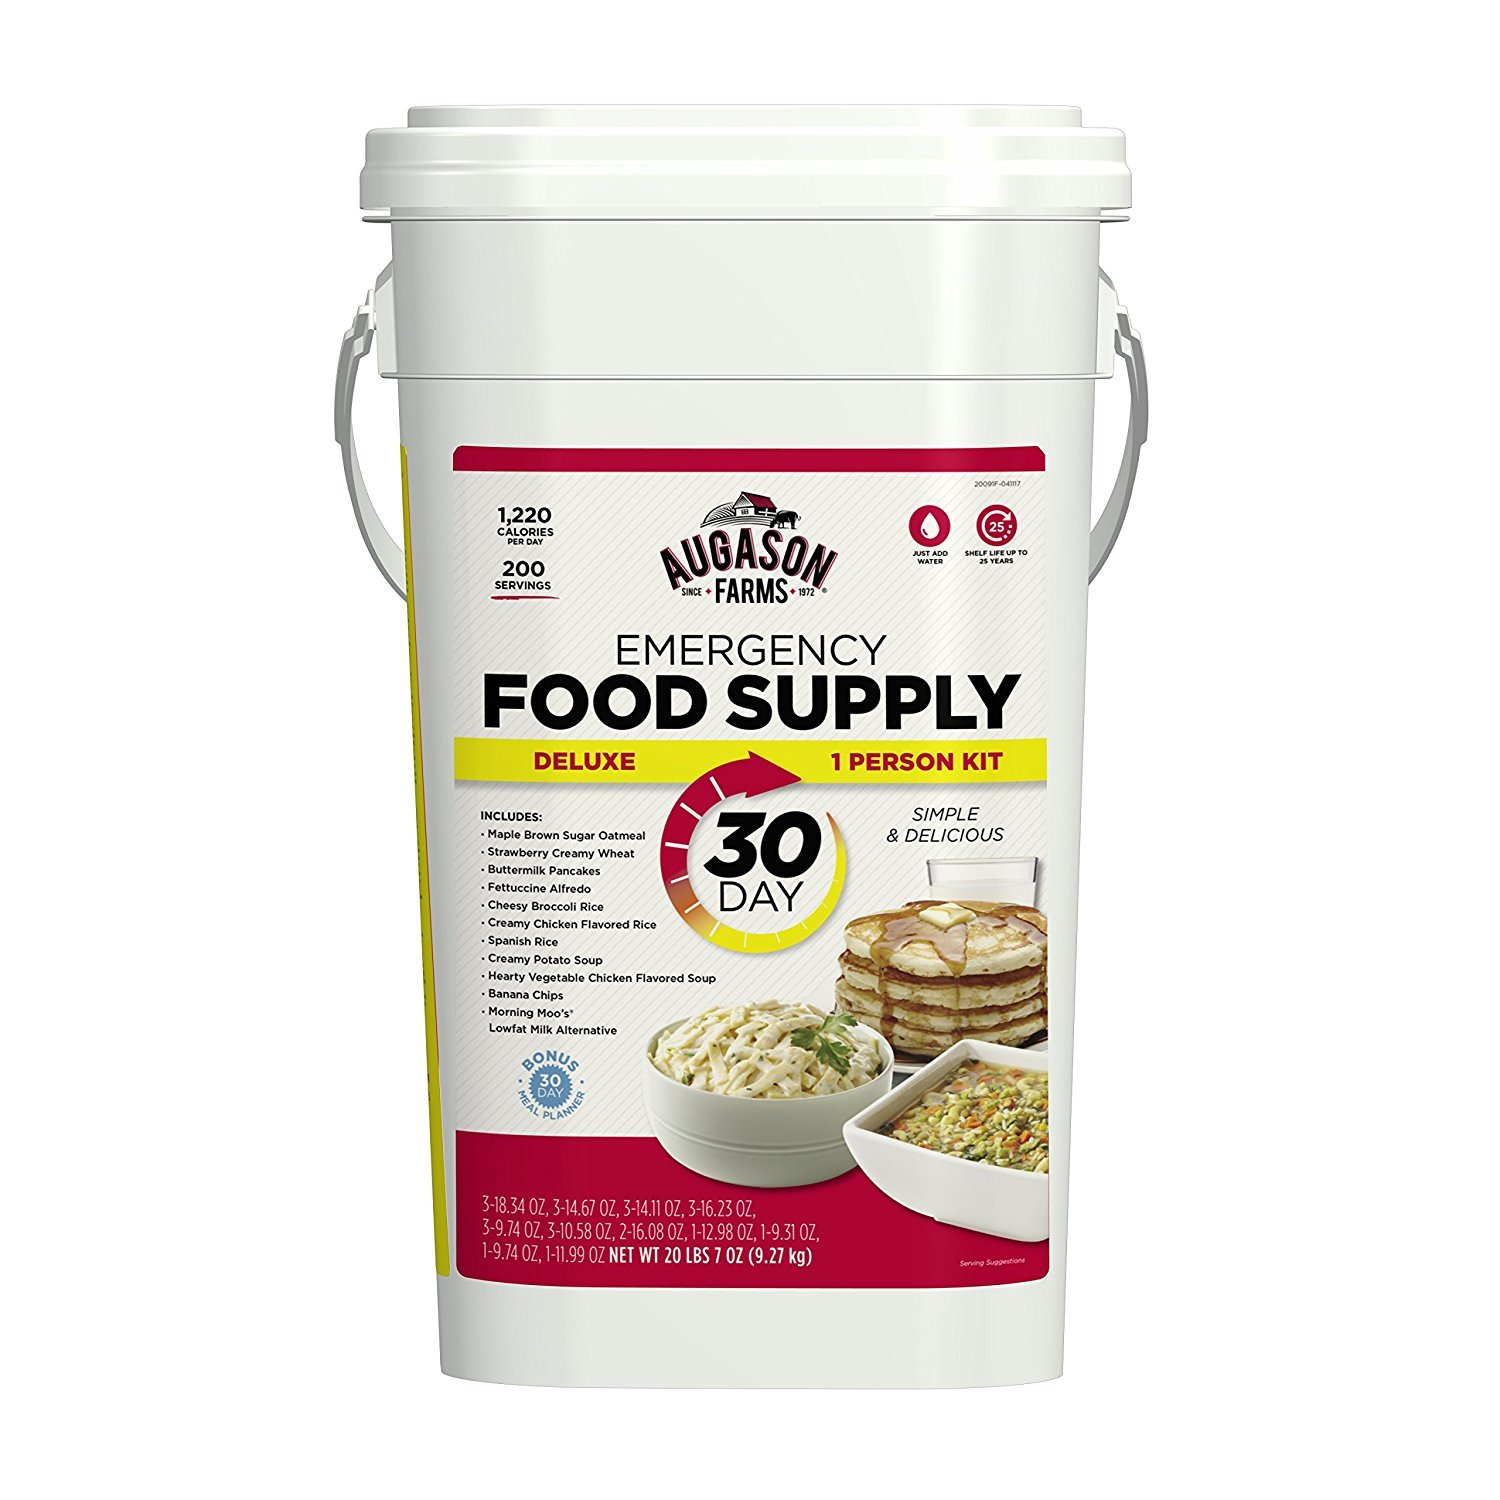 Augason Farms Deluxe Emergency 30-Day Food Supply (1 Person), 200 Servings, 36,600 Calories, Net Weight 20 lbs. 7 oz. (1 PAIL)